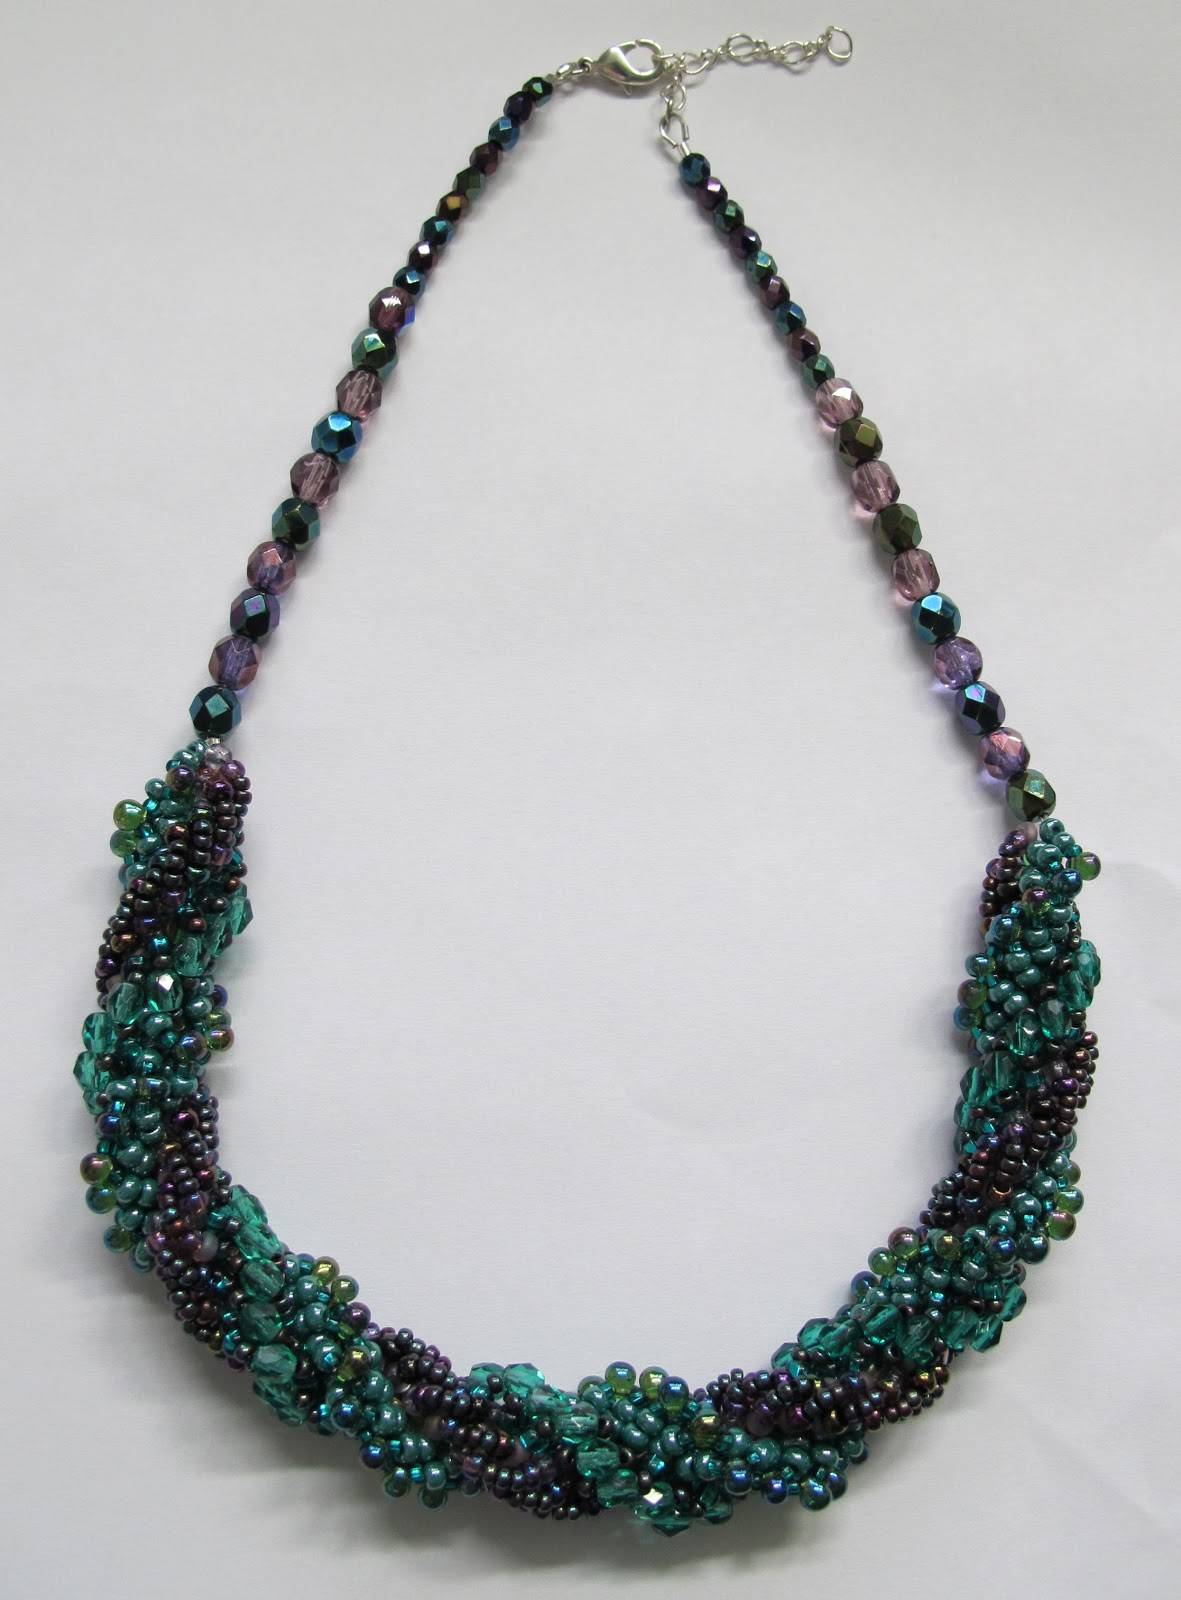 A beaded necklace that I made during my first attempt at Triple Spiral Stitch.